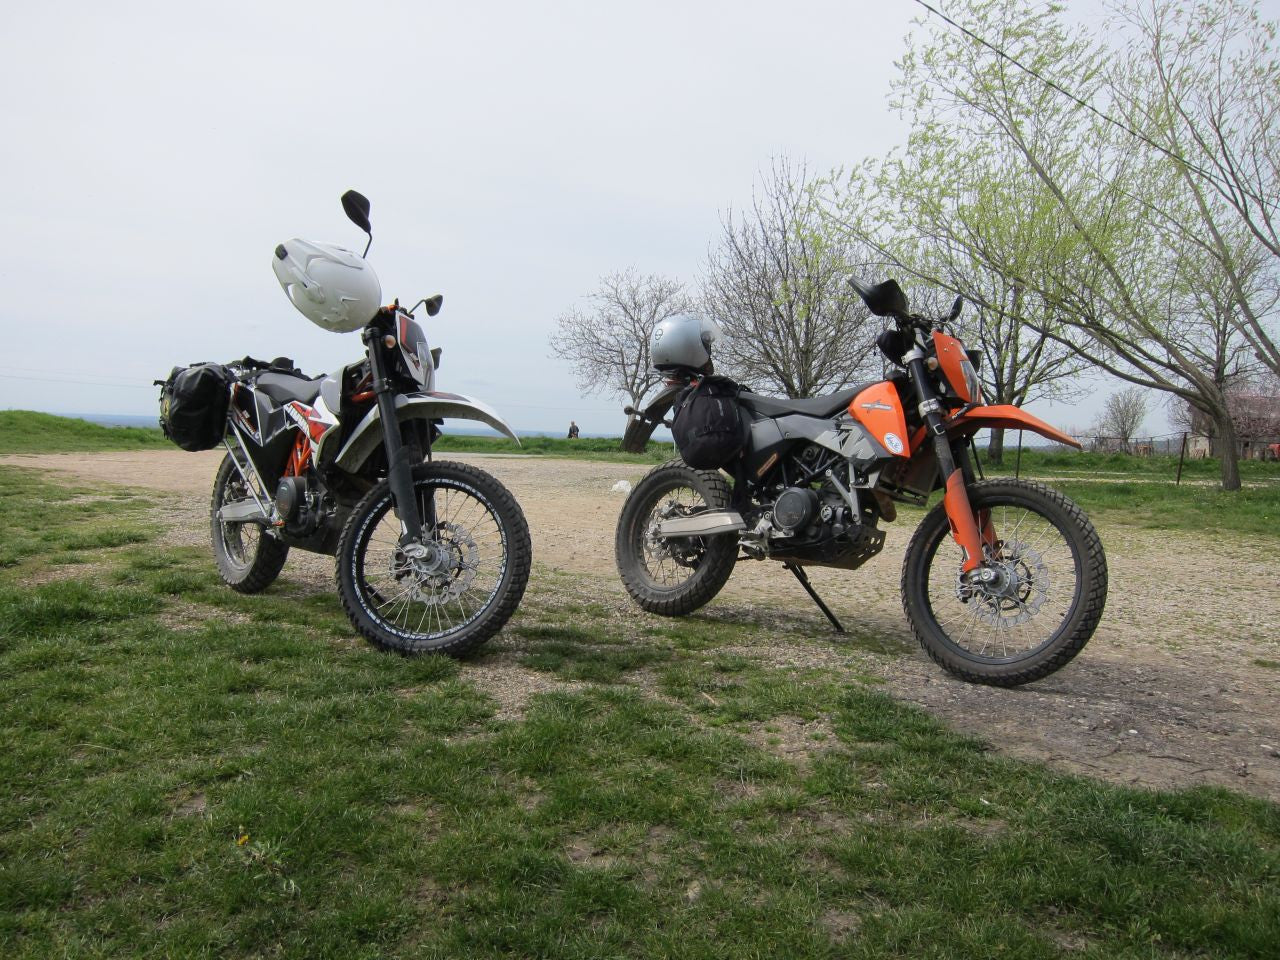 Ride pictures - March 2016. - Fruska Gora, Serbia